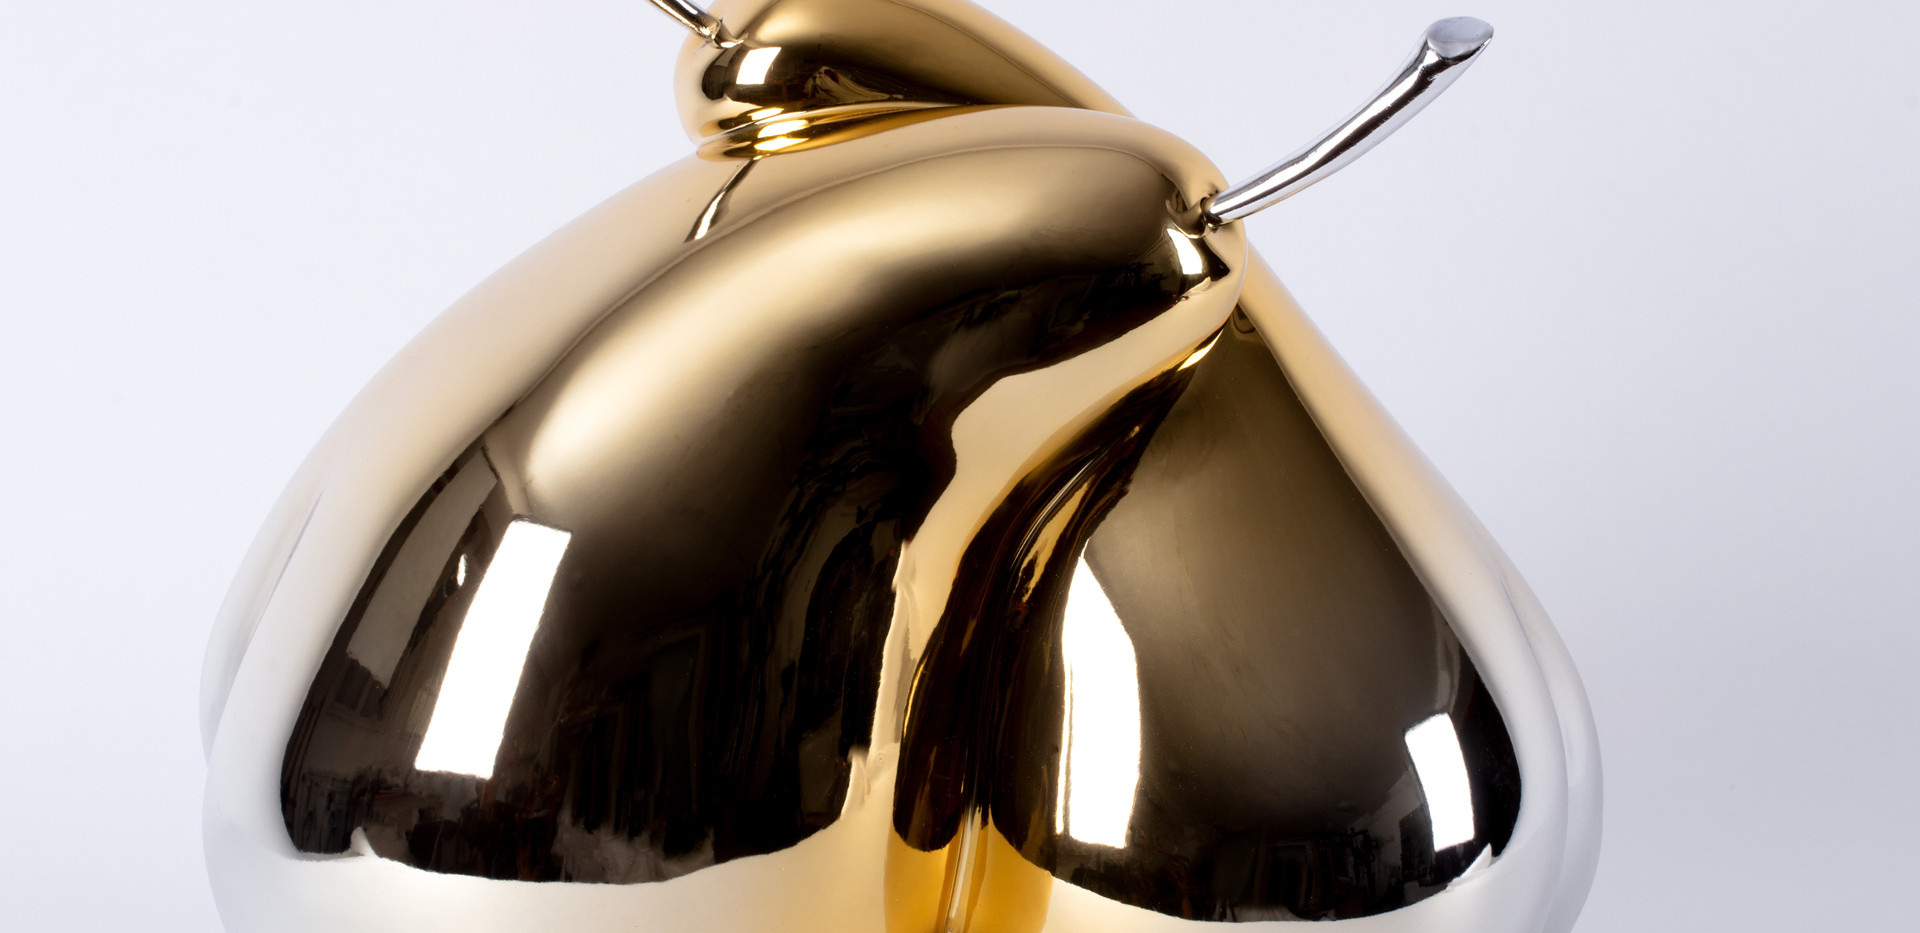 Pears Gold and silver - 2.jpg